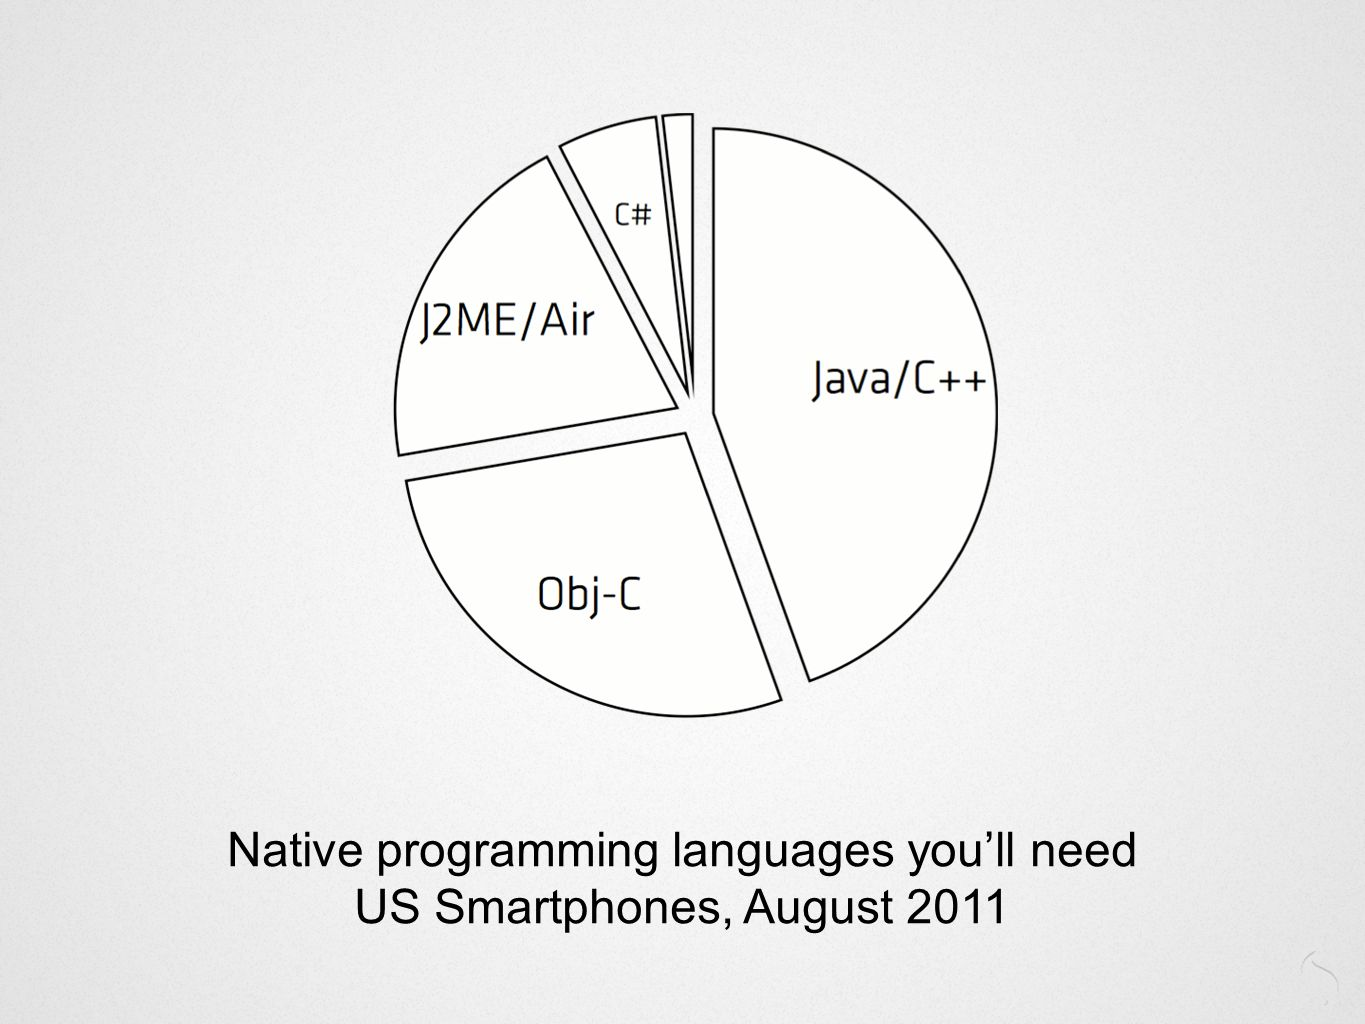 Native programming languages youll need US Smartphones, August 2011